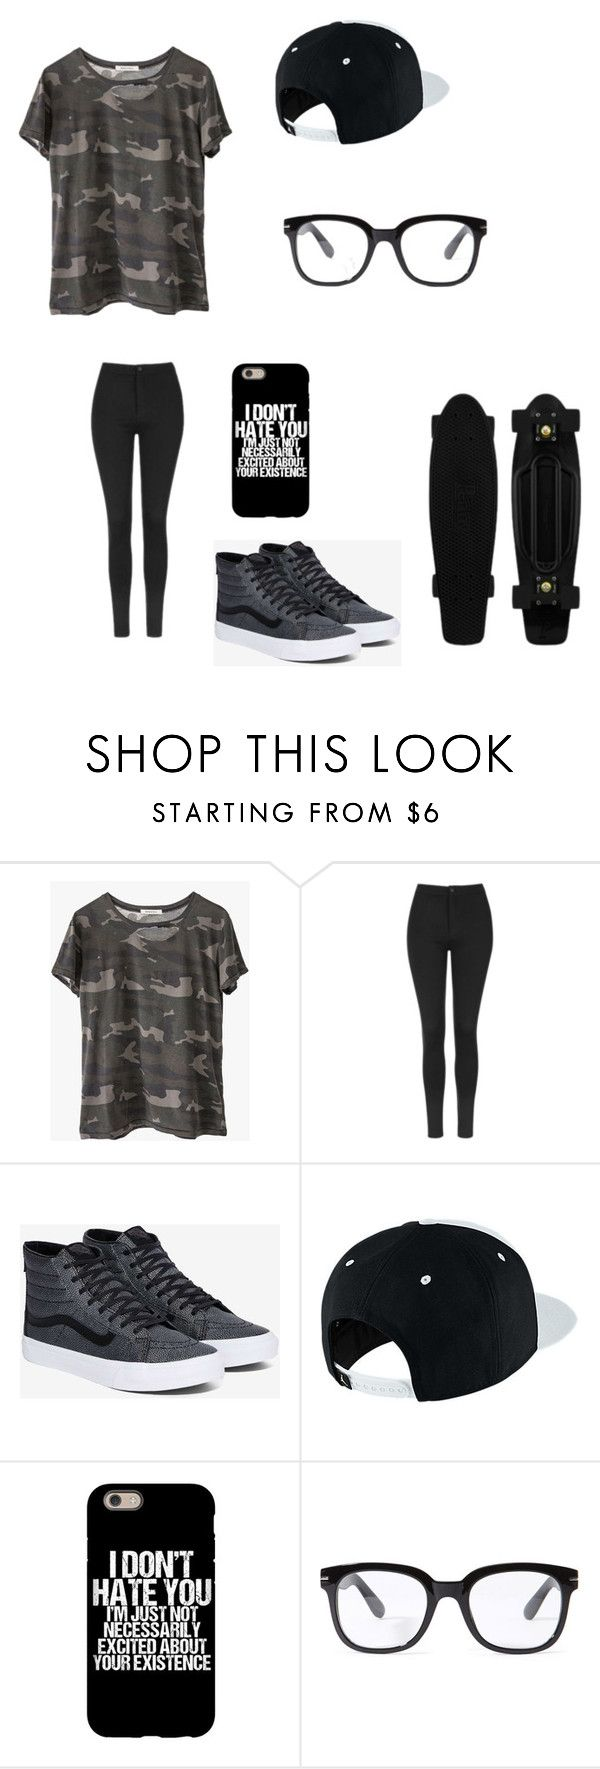 """Untitled #121"" by darksoul7 on Polyvore featuring Ragdoll, Topshop, Vans, NIKE and Forever 21"